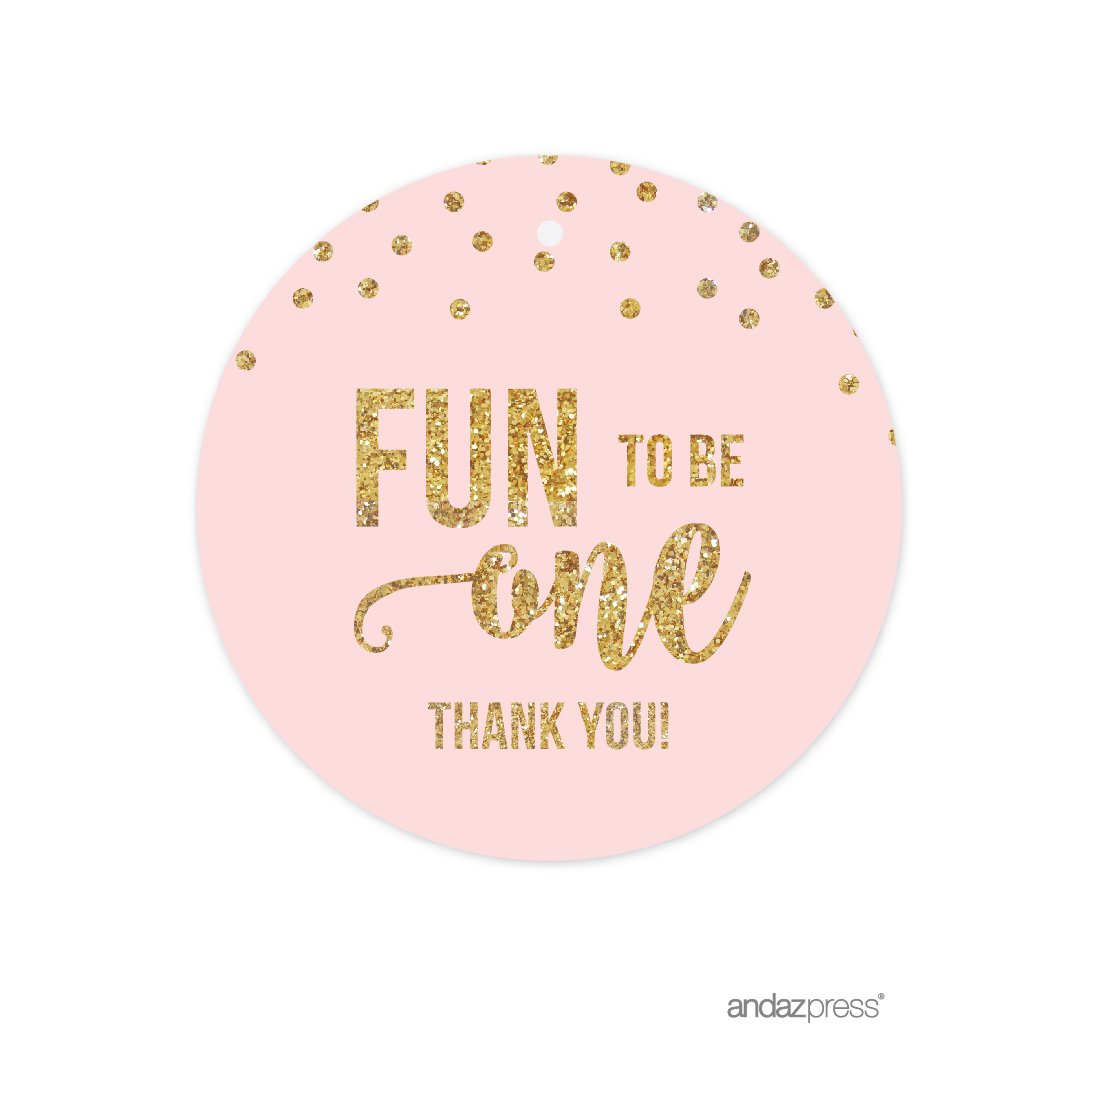 Andaz Press Blush Pink Gold Glitter Girl's 1st Birthday Party Collection, Round Circle Gift Tags, Fun to Be One Thank You, 24-Pack